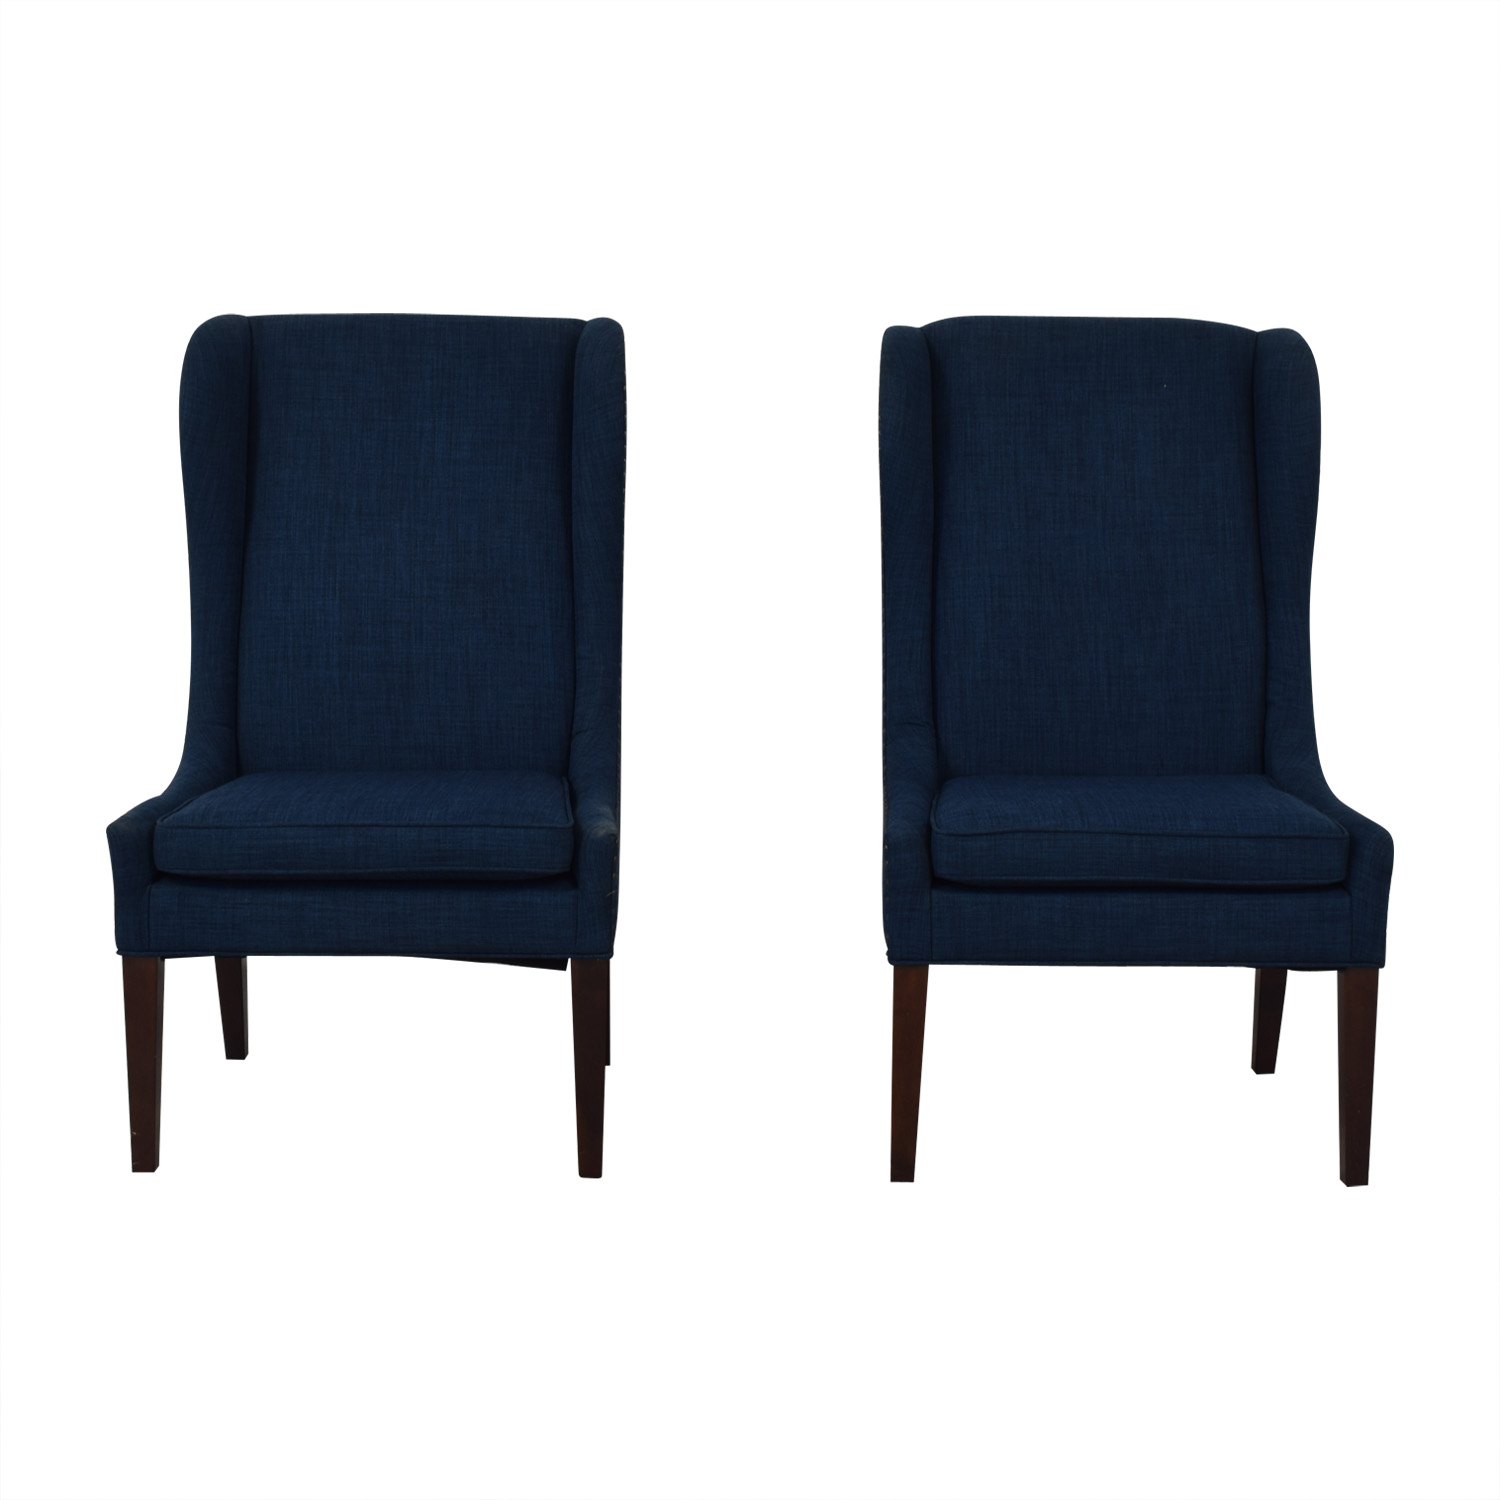 Macy's Blue Accent Chairs sale